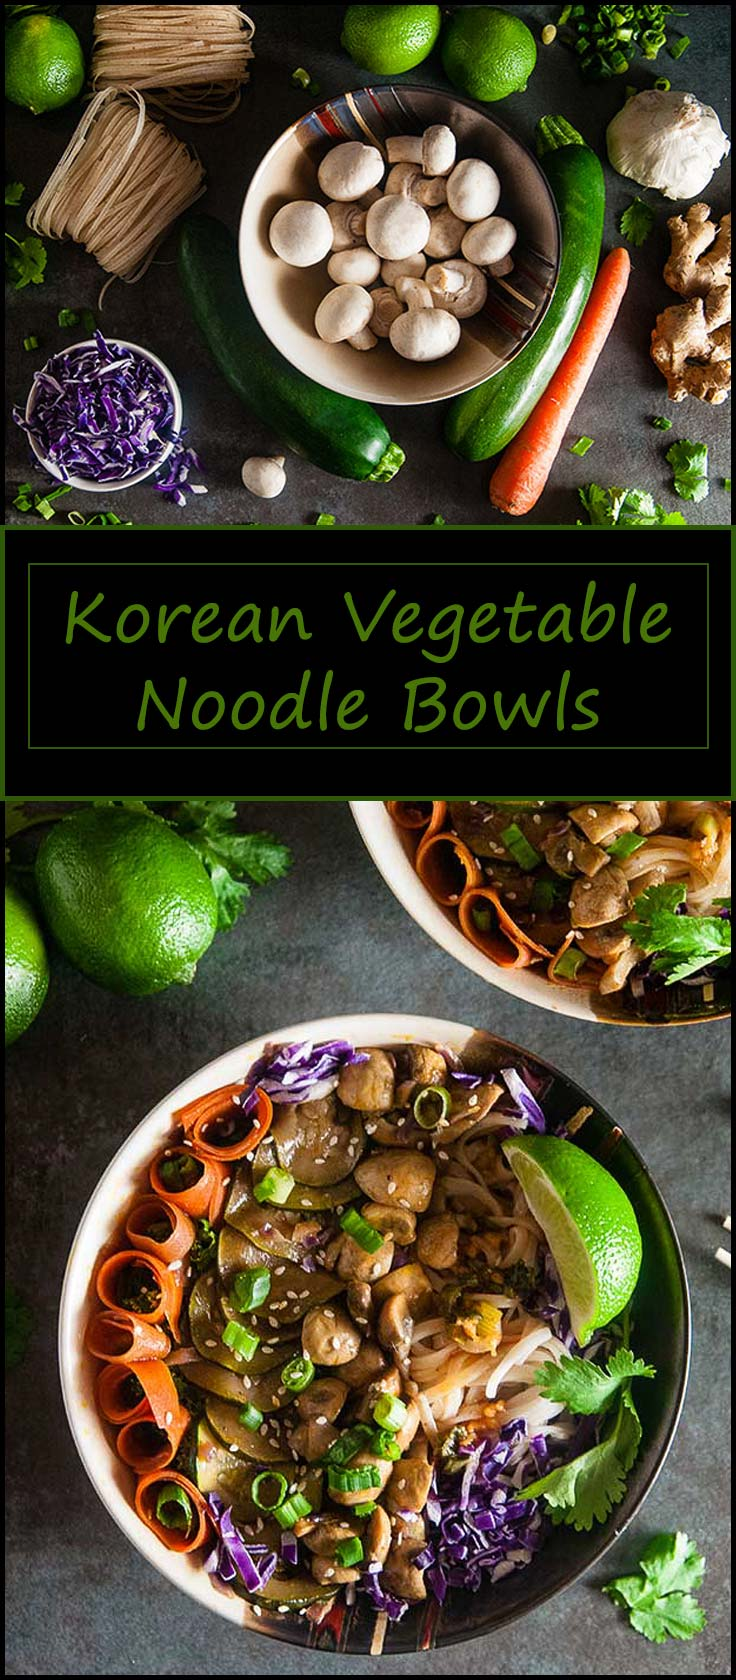 Quick Korean Vegetable Noodle Bowls inspired by bibimbap make for a vegetarian and gluten free friendly lunch or dinner that's ready in under 20 minutes from www.seasonedsprinkles.com